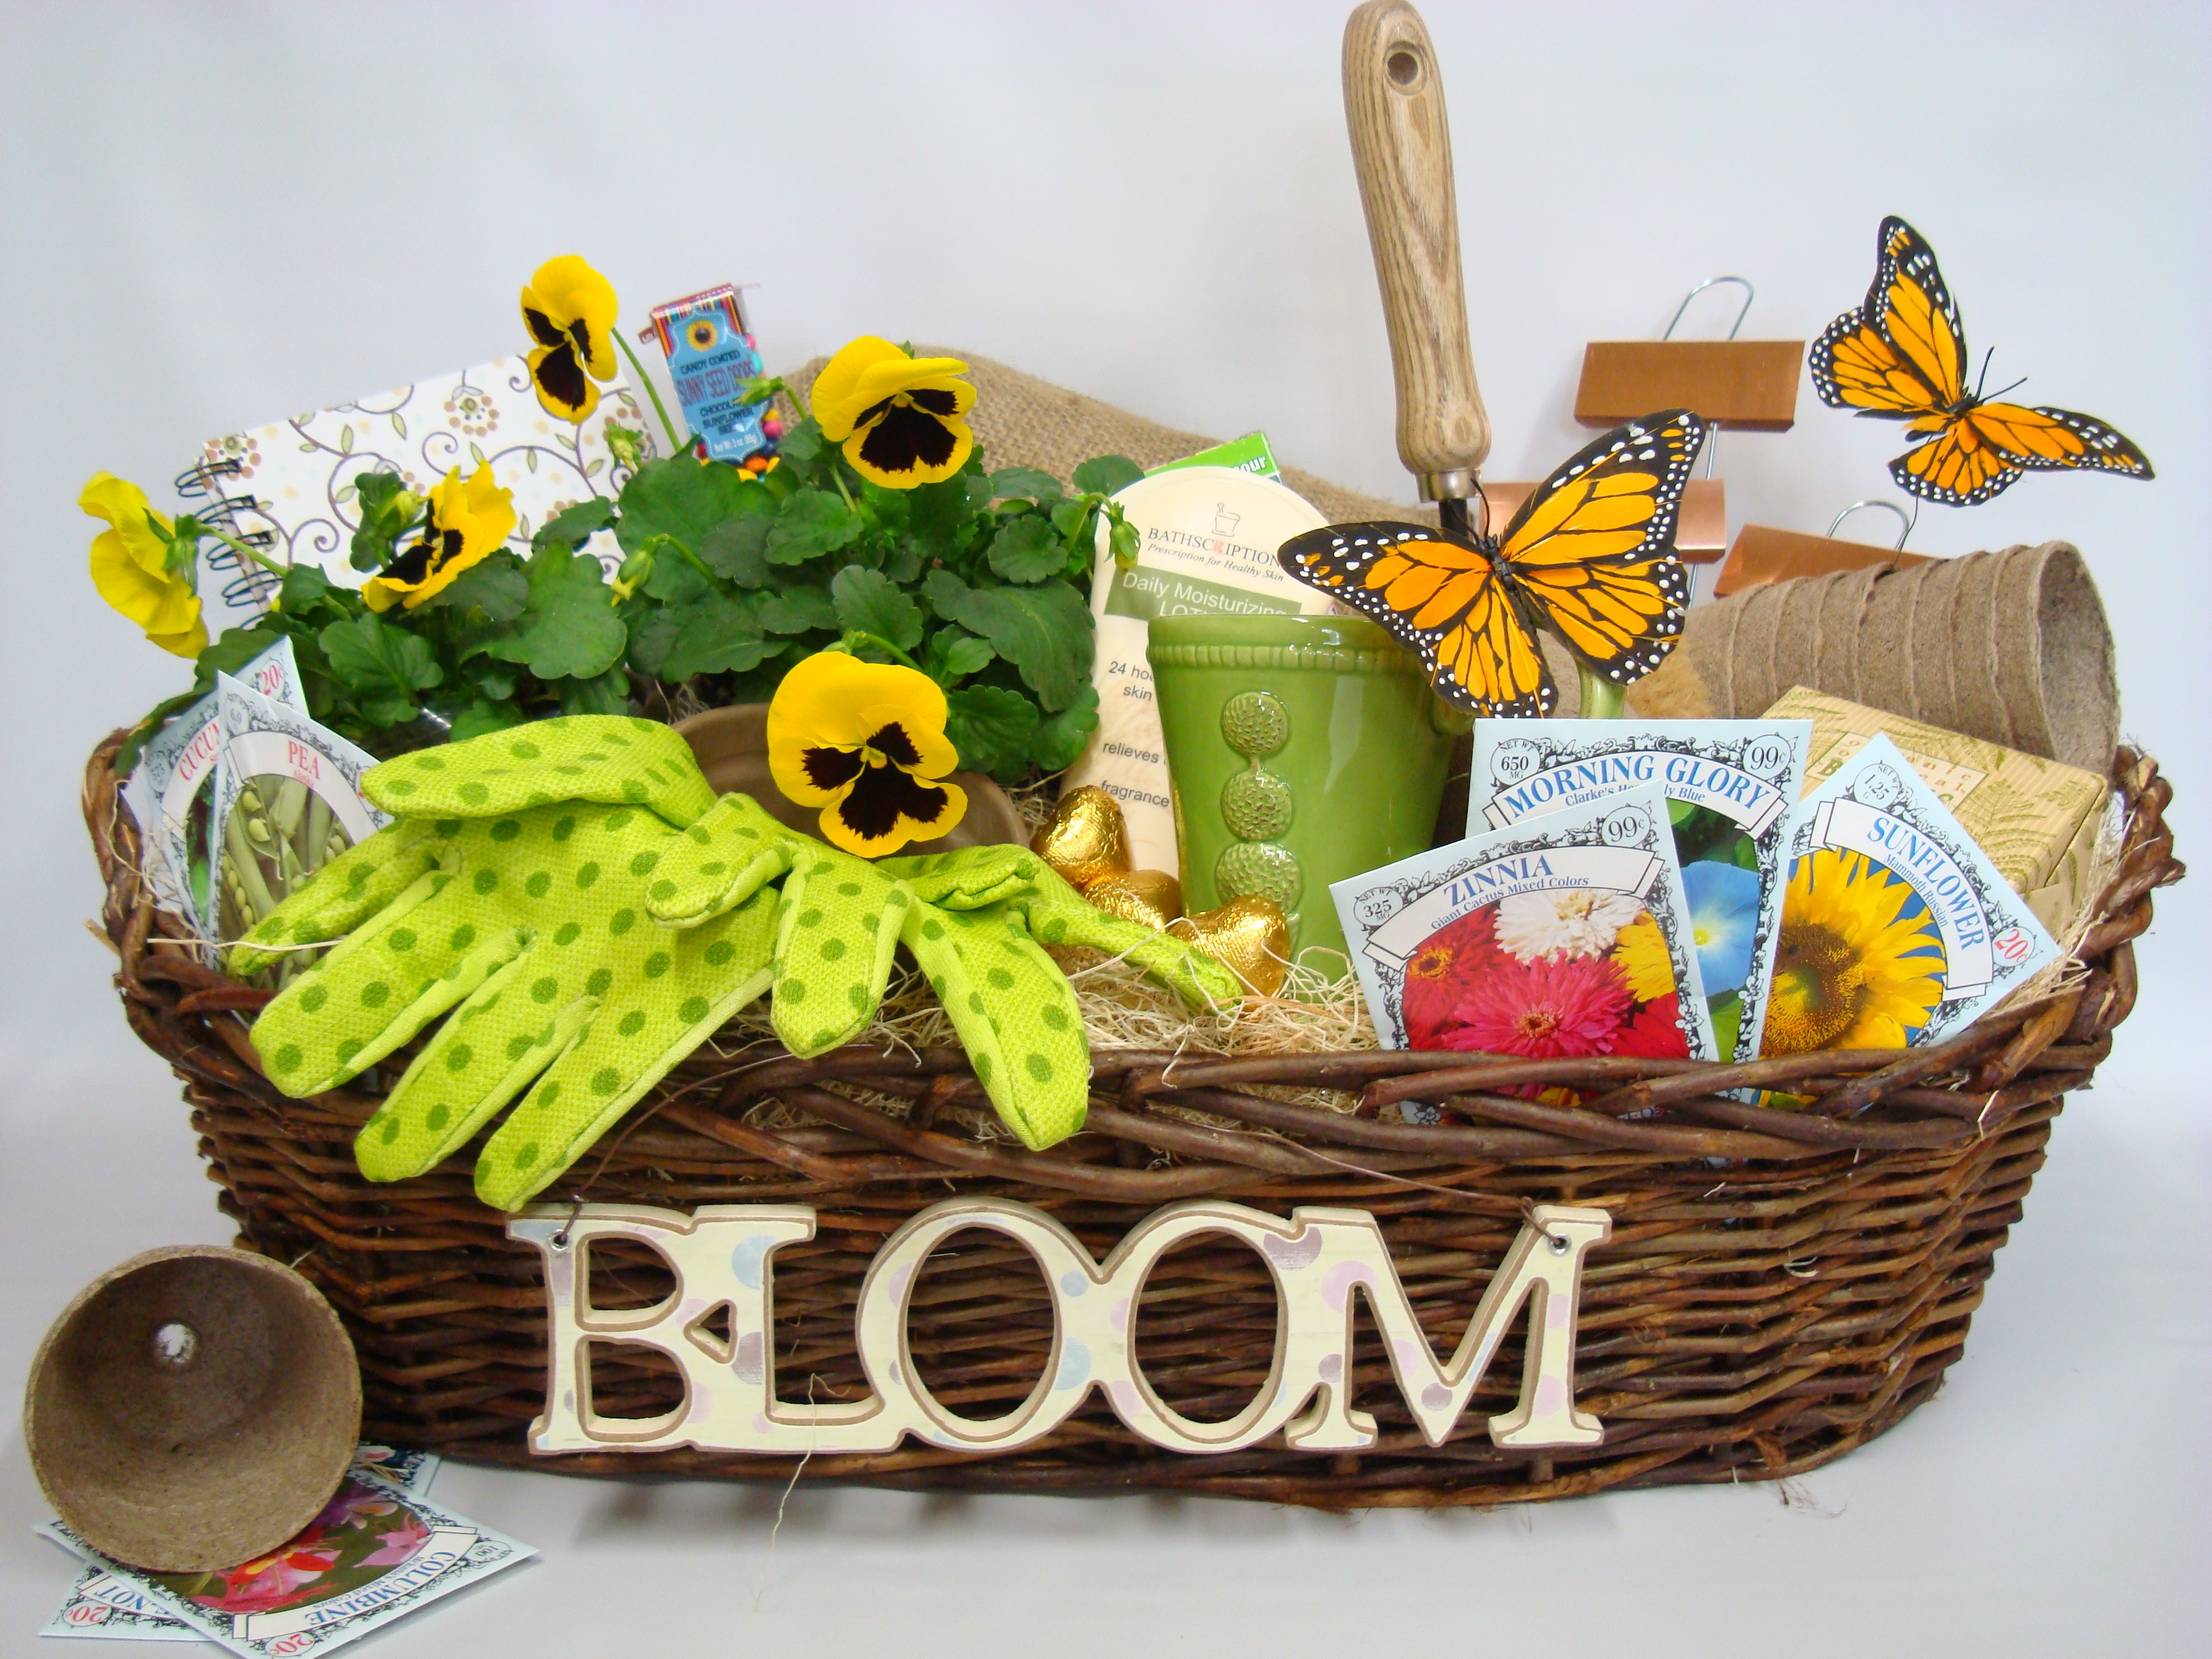 attaching wooden letters is a good idea as opposed to stamping on a basket raffle basketsgift basketsgarden